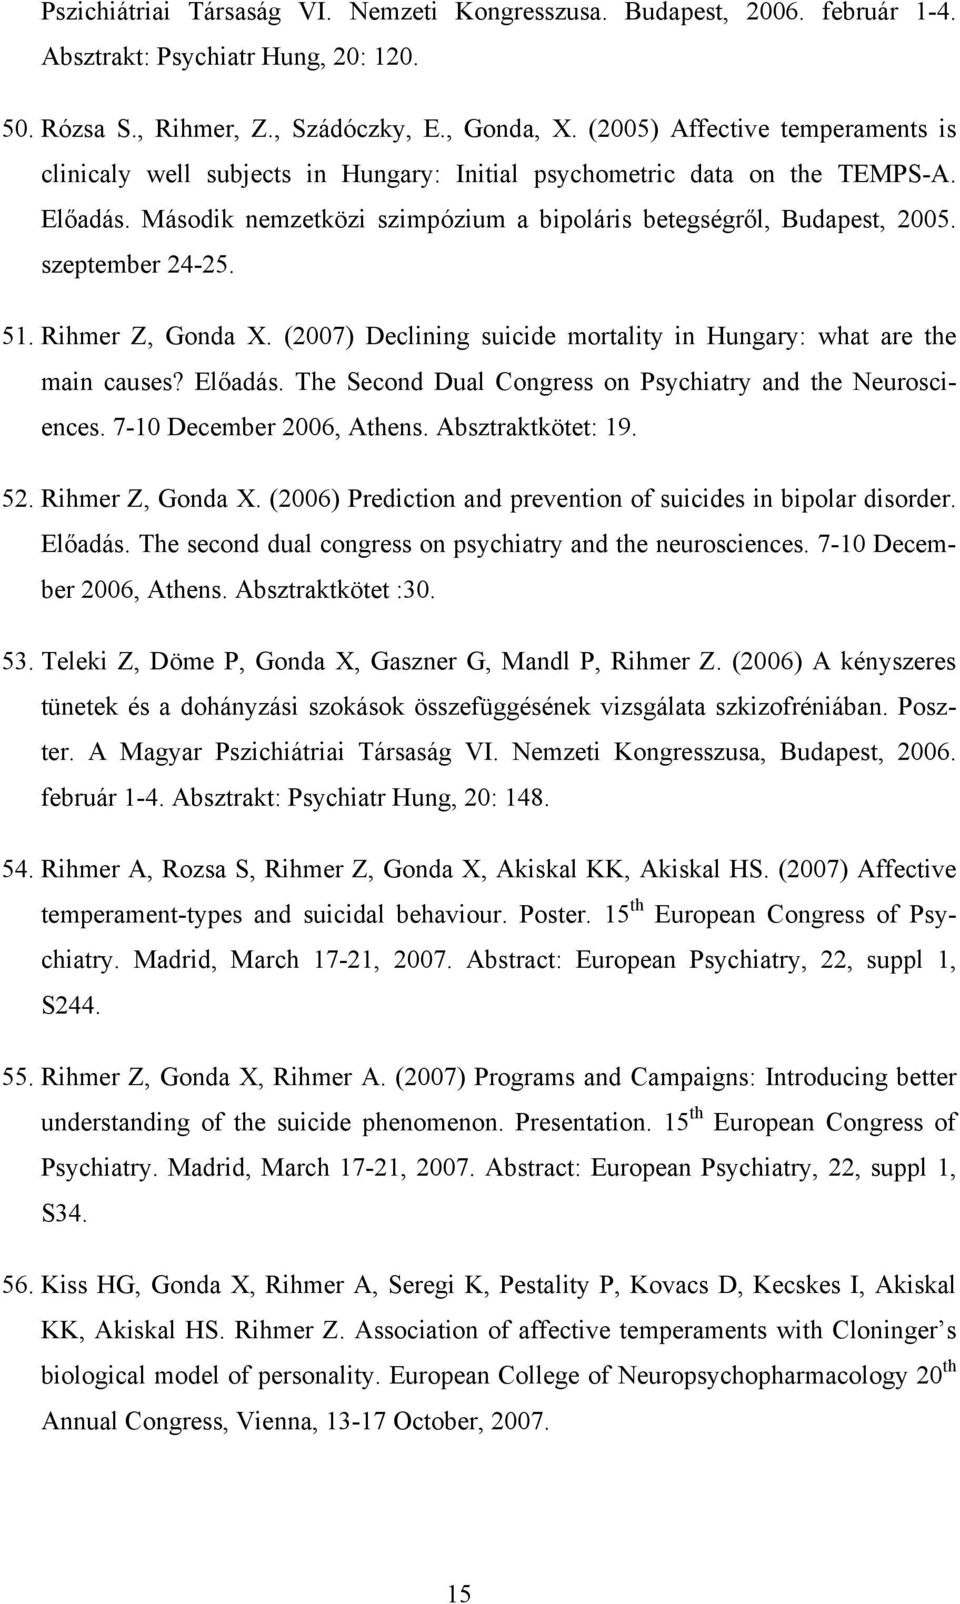 szeptember 24-25. 51. Rihmer Z, Gonda X. (2007) Declining suicide mortality in Hungary: what are the main causes? Előadás. The Second Dual Congress on Psychiatry and the Neurosciences.